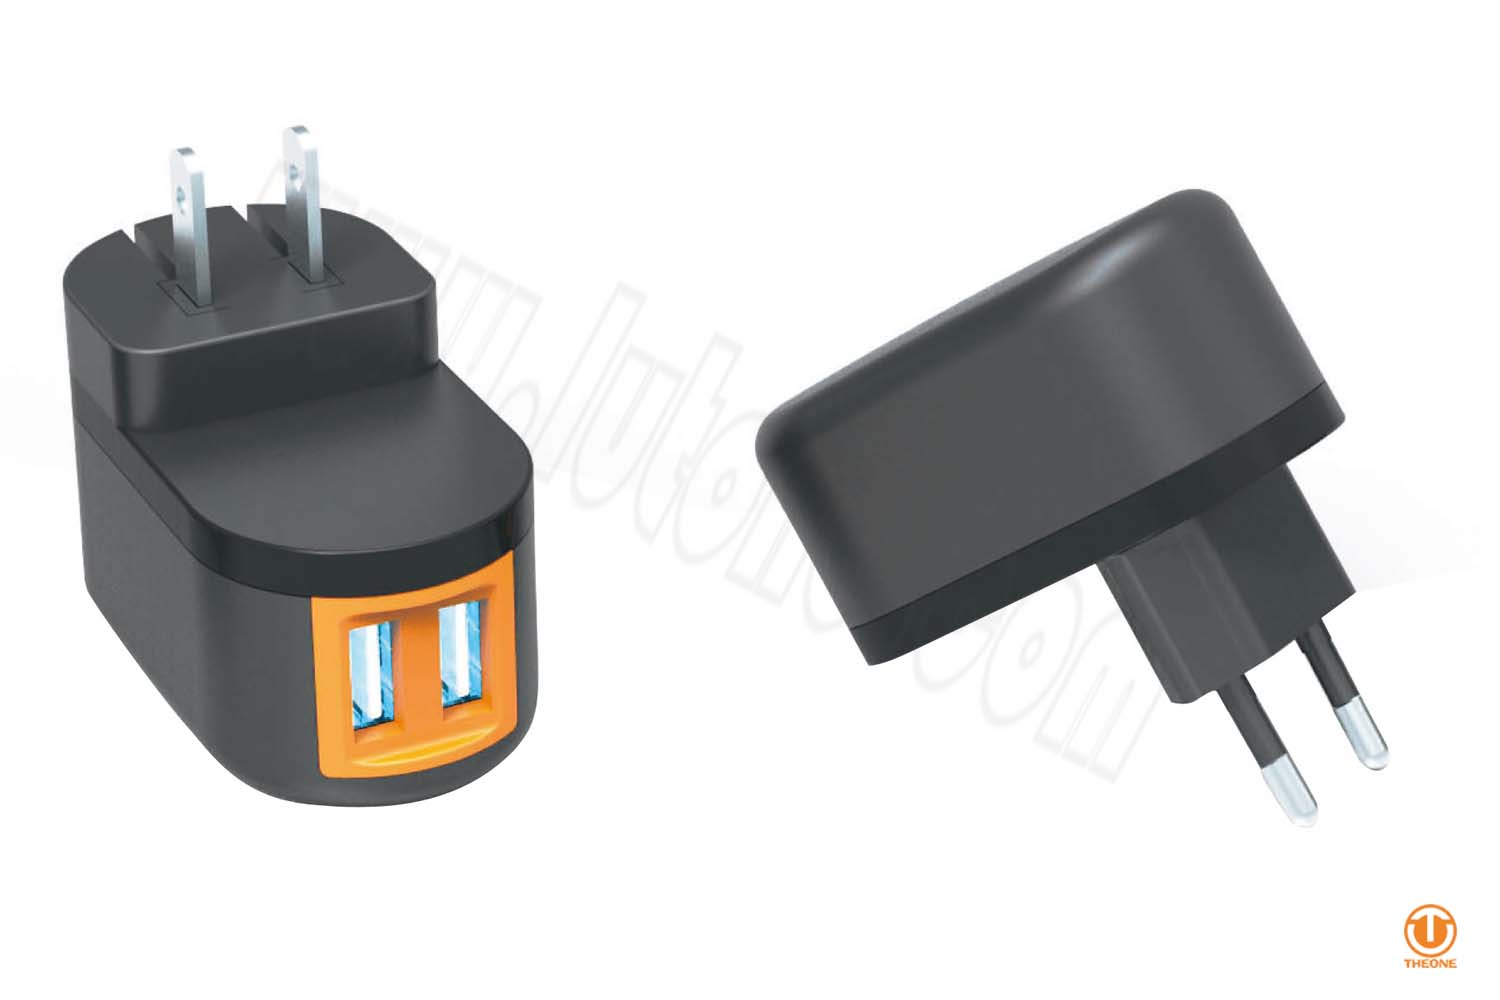 tw01a8-2 dual usb wall charger